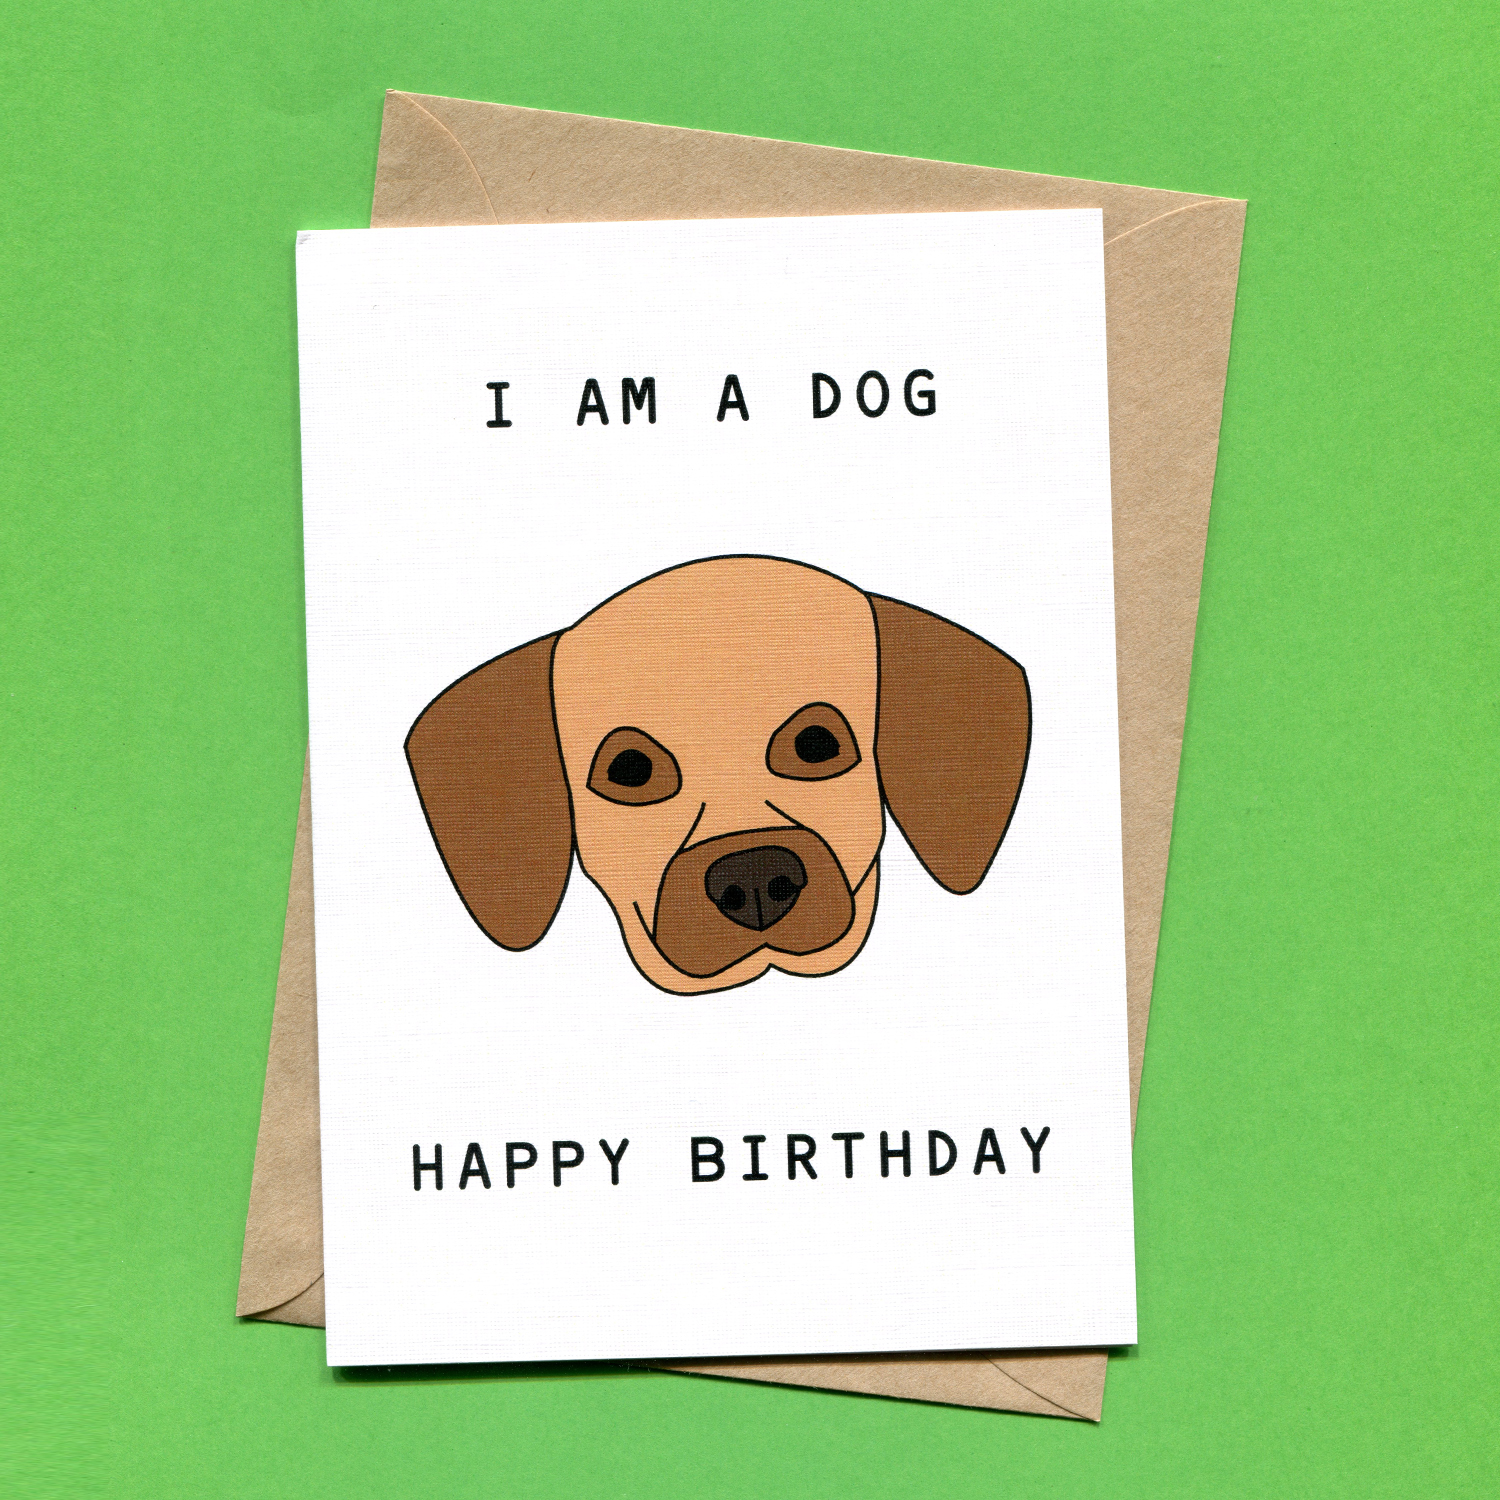 Catalogue_Things by Bean I Am A Dog Happy Birthday Greeting Card.jpg